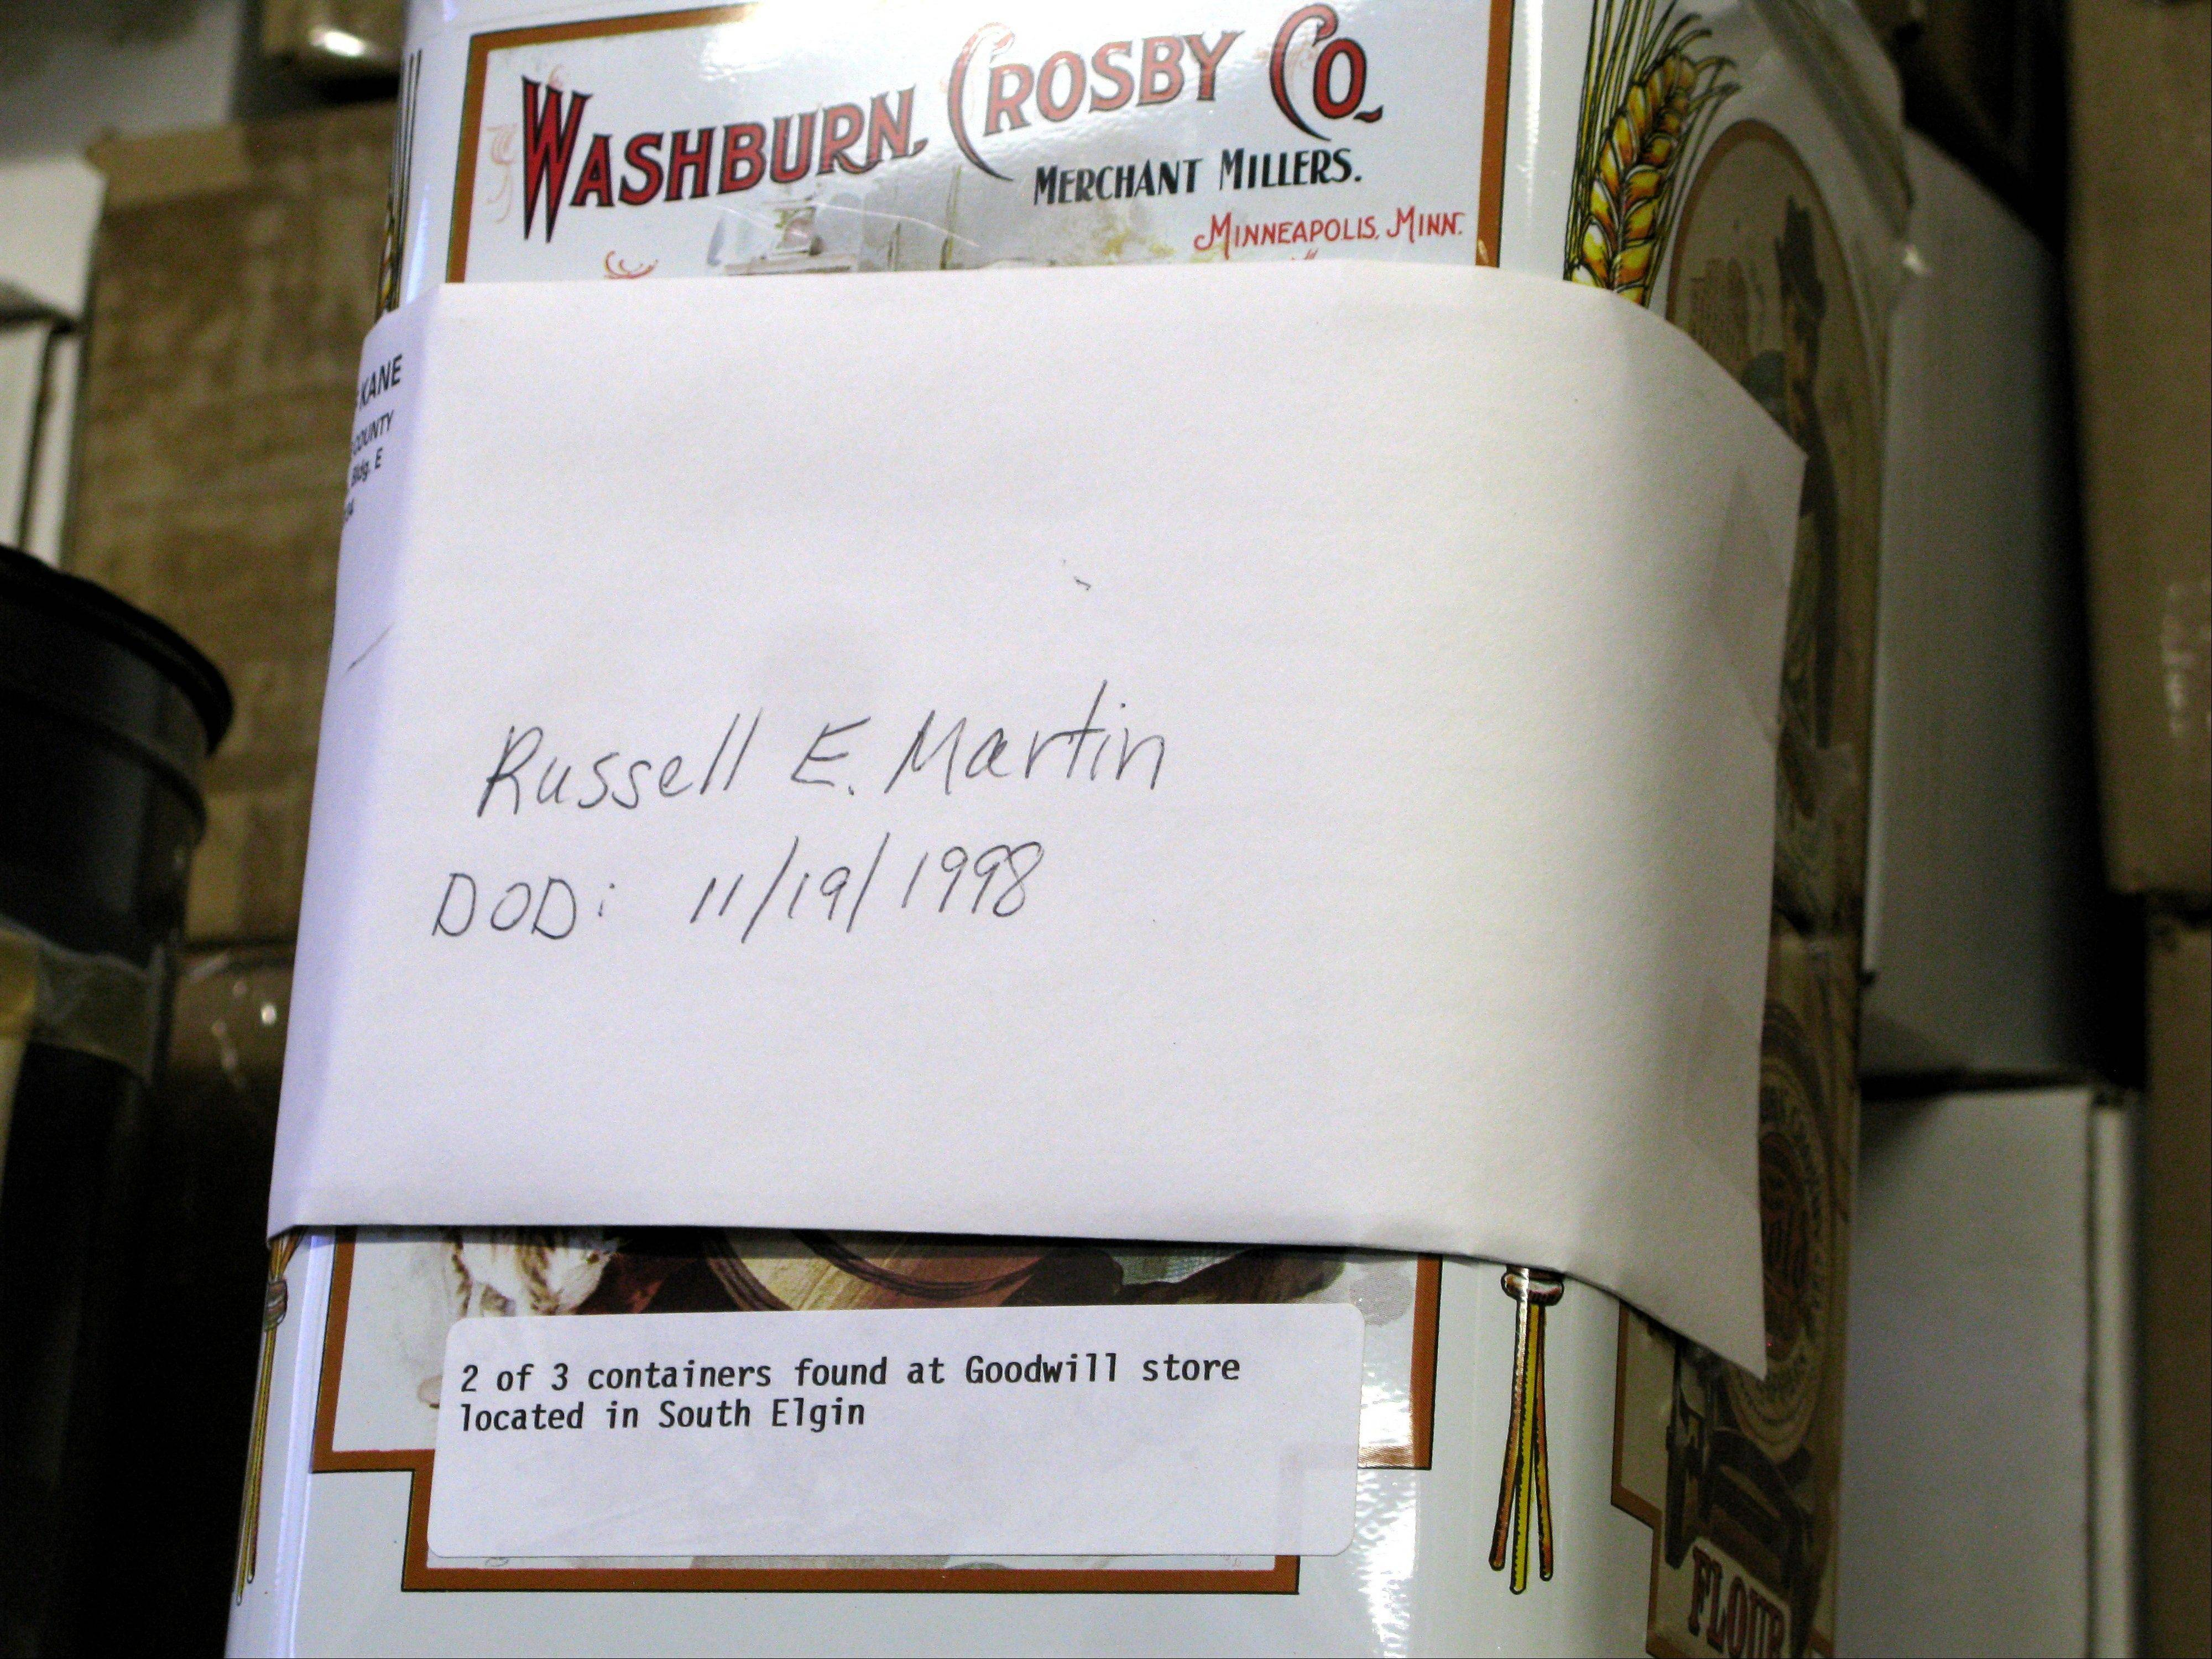 An old flour tin contains the remains of Russell E. Martin. It is one of three containers of ashes discovered together at the Goodwill store in South Elgin.